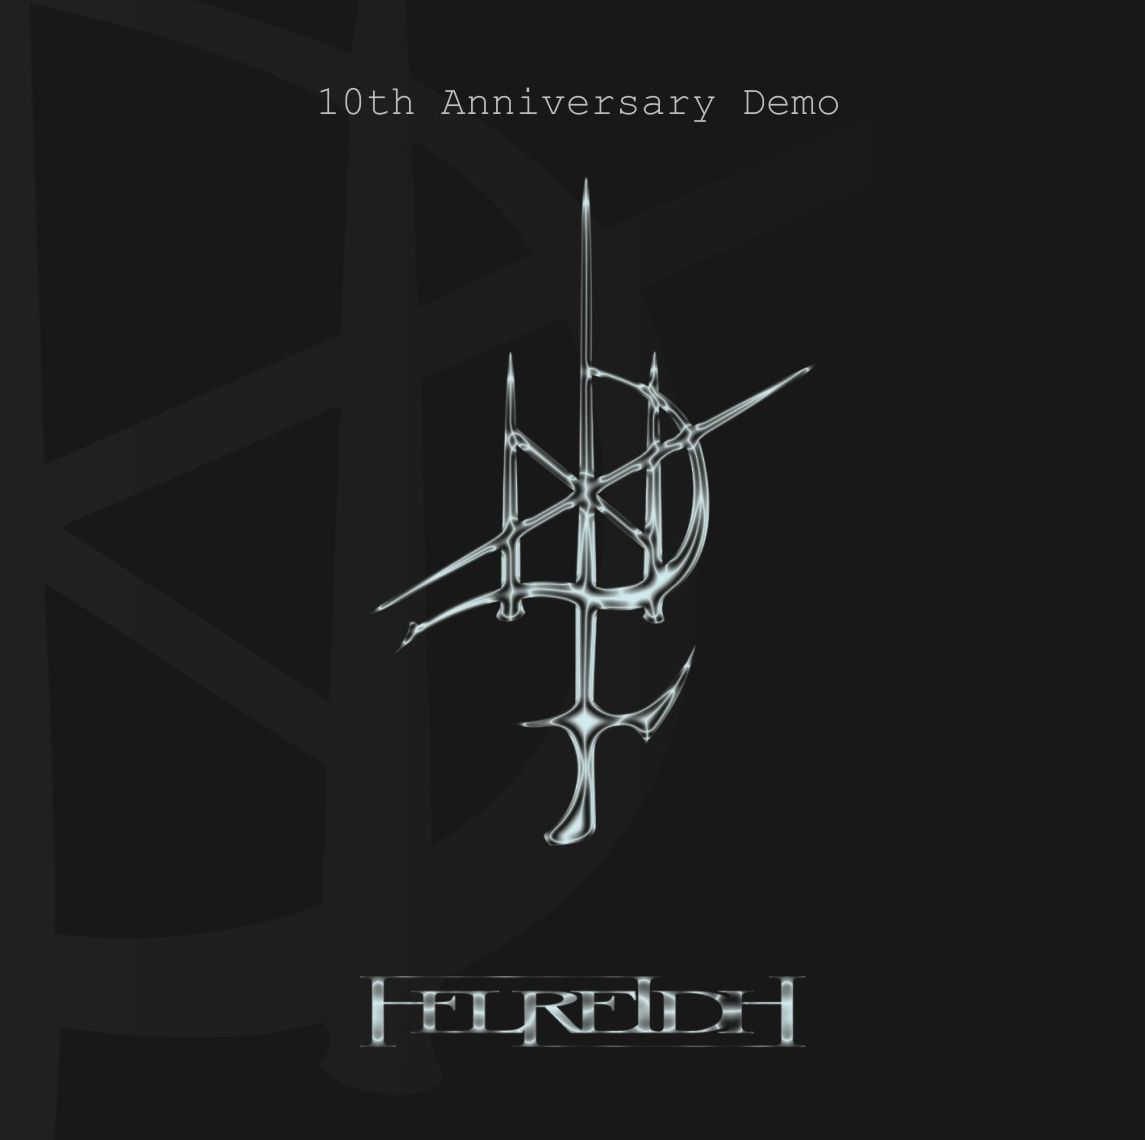 Helreið - 10th Anniversary Demo